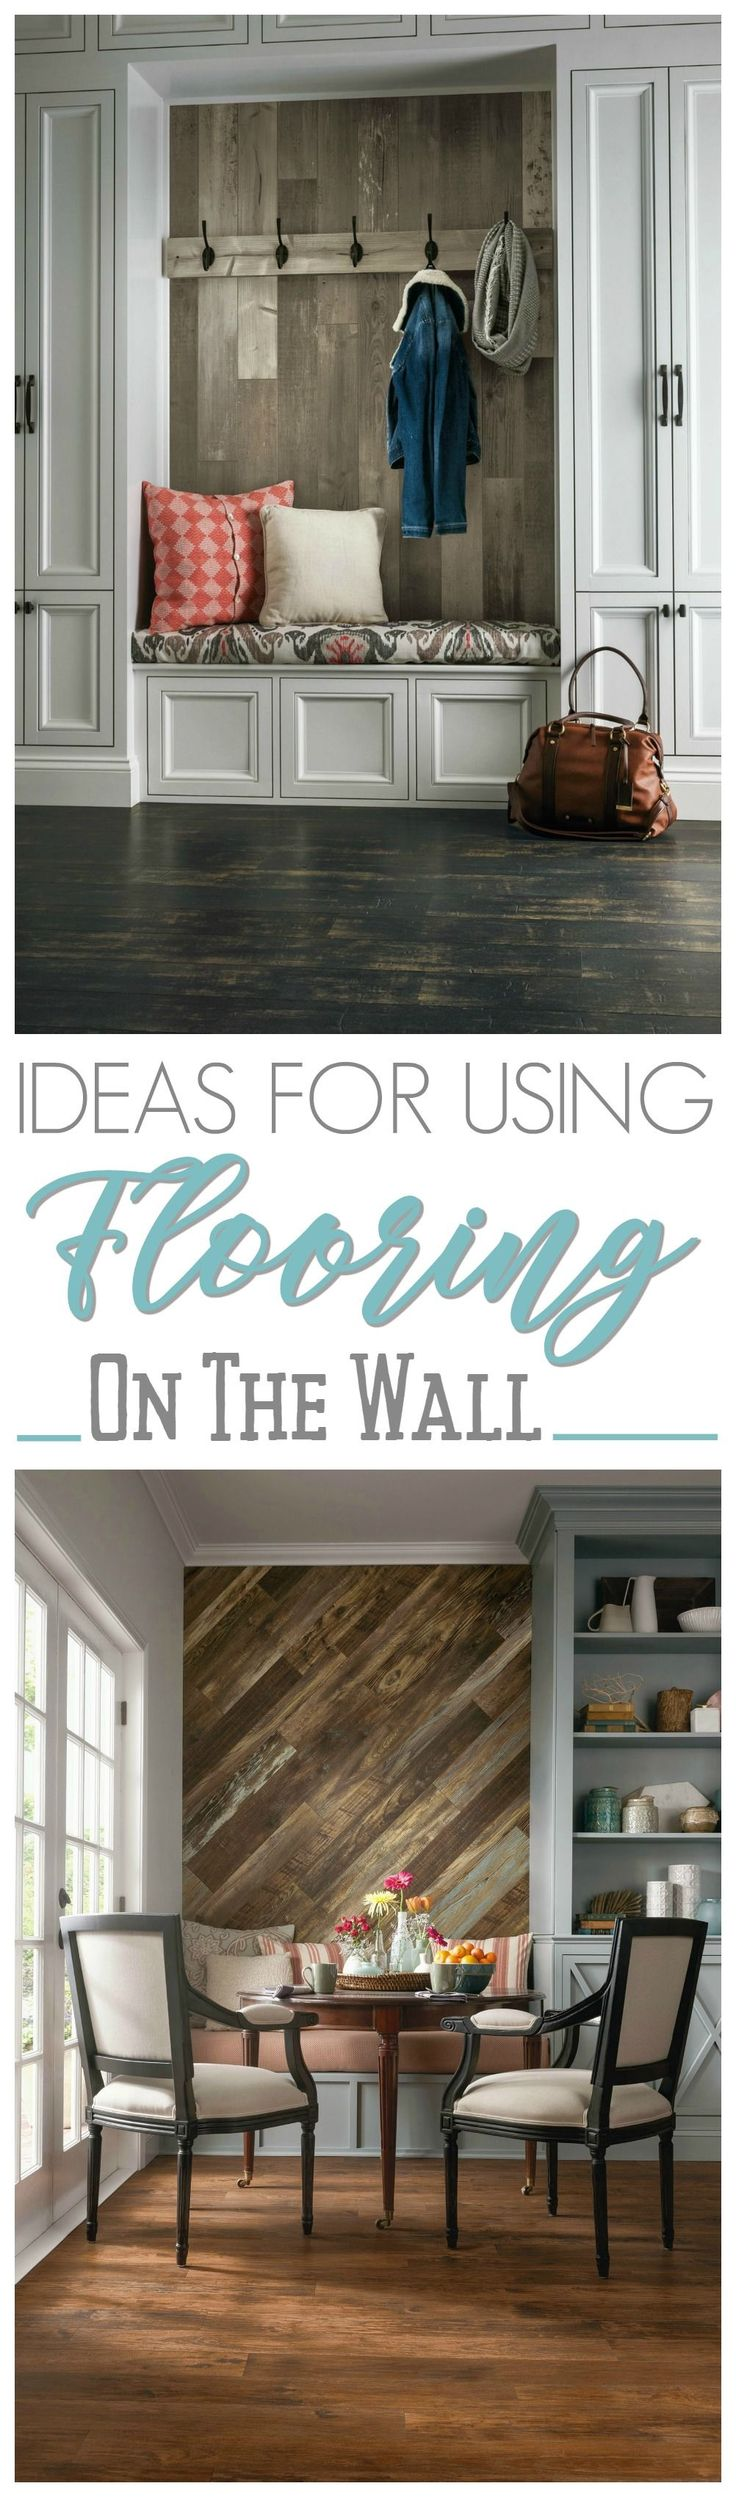 Wood Feature Accent Wall Ideas Using Flooring - From farmhouse mud rooms to kitchens... and even used as headboards... there are so many amazing ways to add texture and interest with flooring, that you won't be walking on!